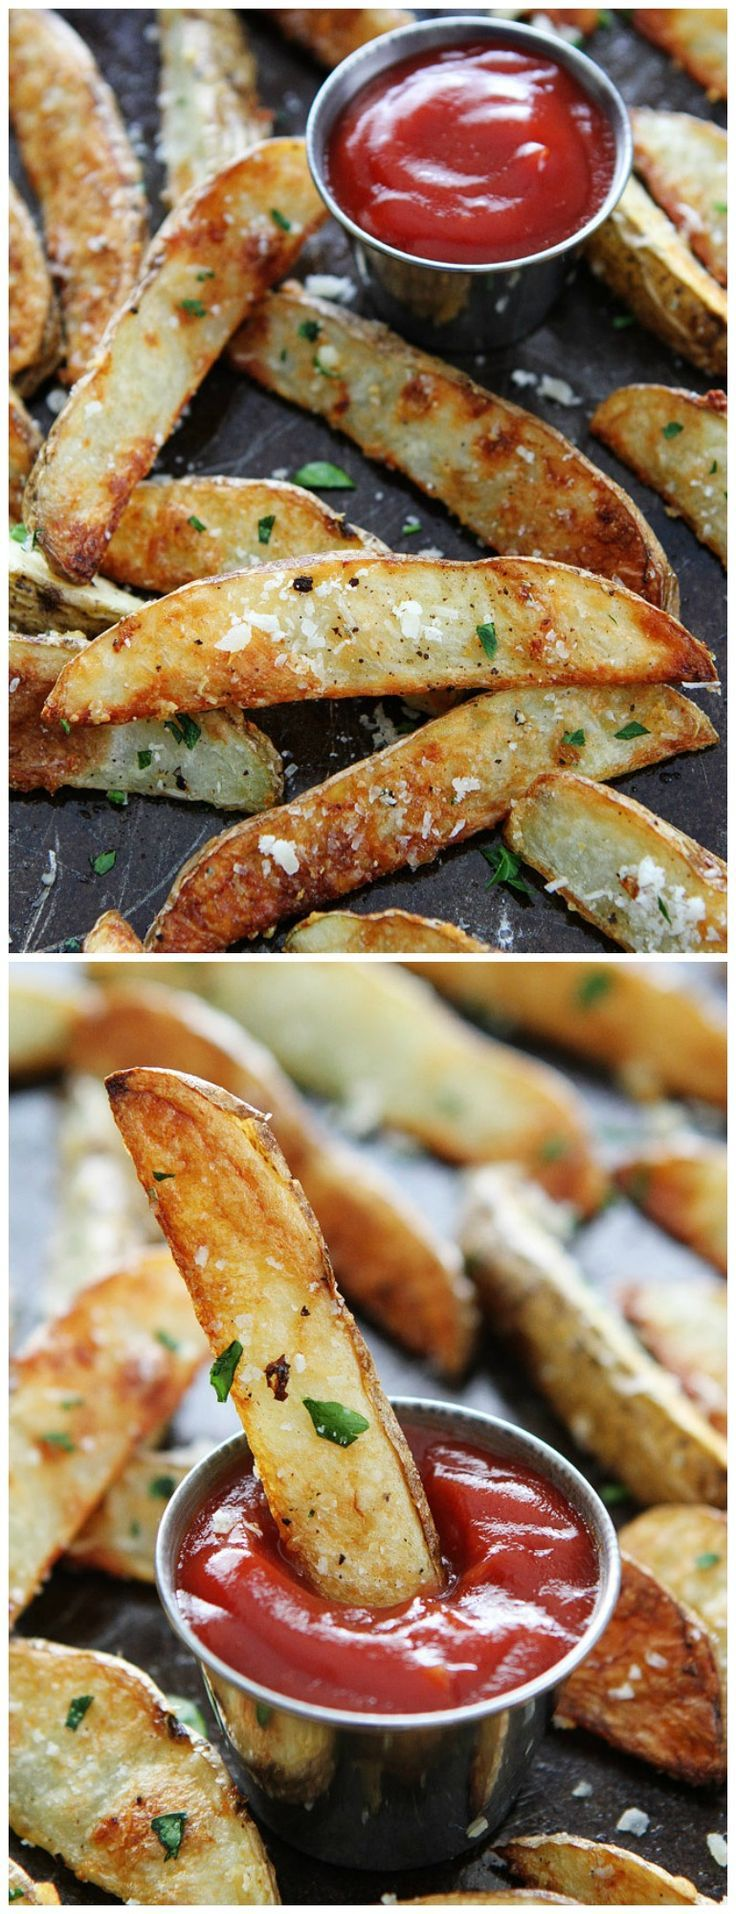 Baked Garlic Parmesan Potato Wedges Recipe on twopeasandtheirpod.com These are the BEST French fries and they are SO easy to make at home!